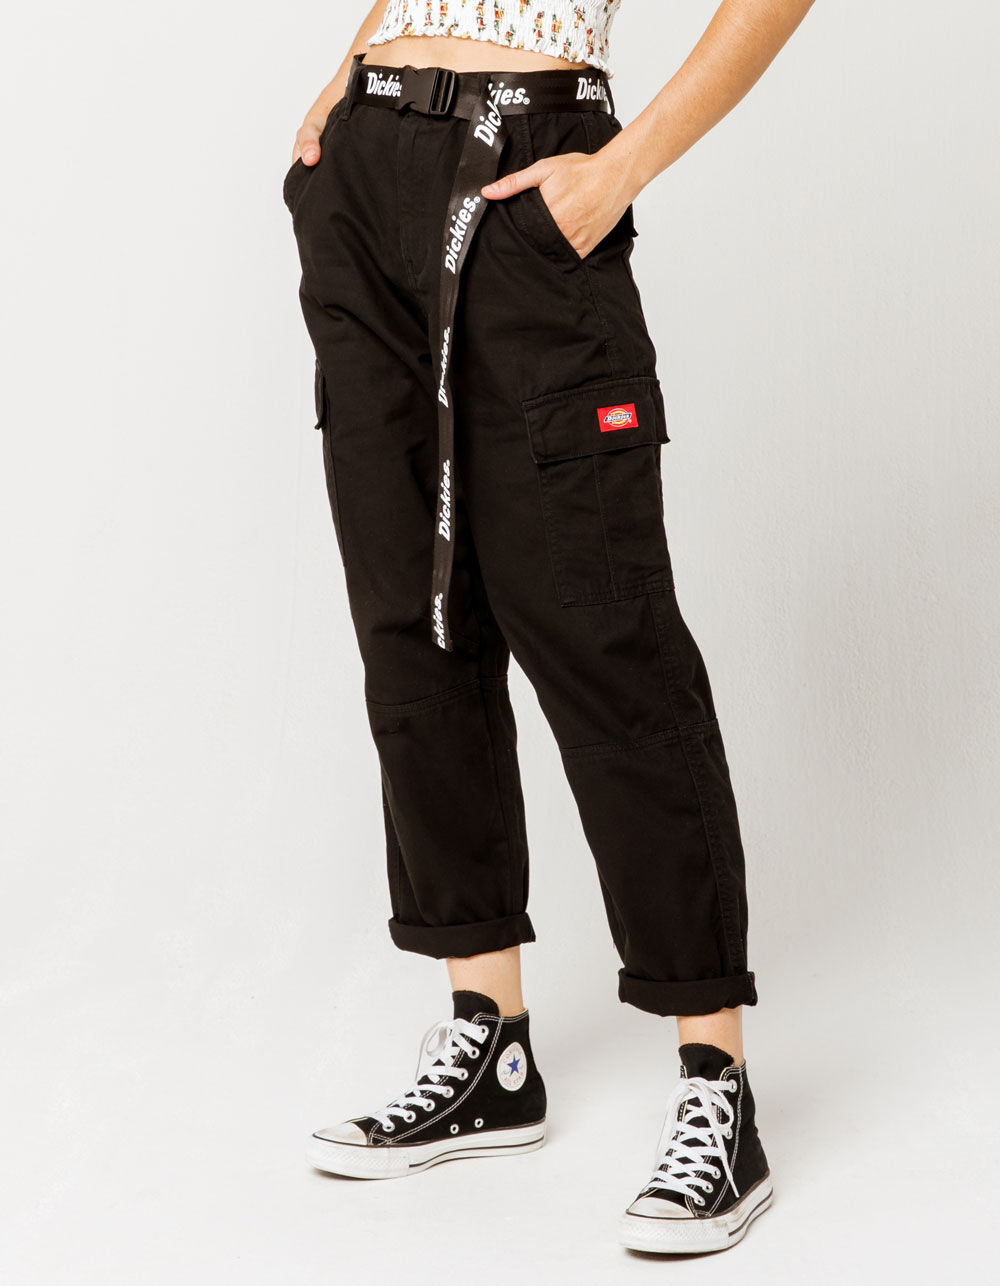 Dickies Belted Utility Black Cargo Pants Black 355708100 Cargo Pants Outfit Black Cargo Pants Skater Girl Outfits